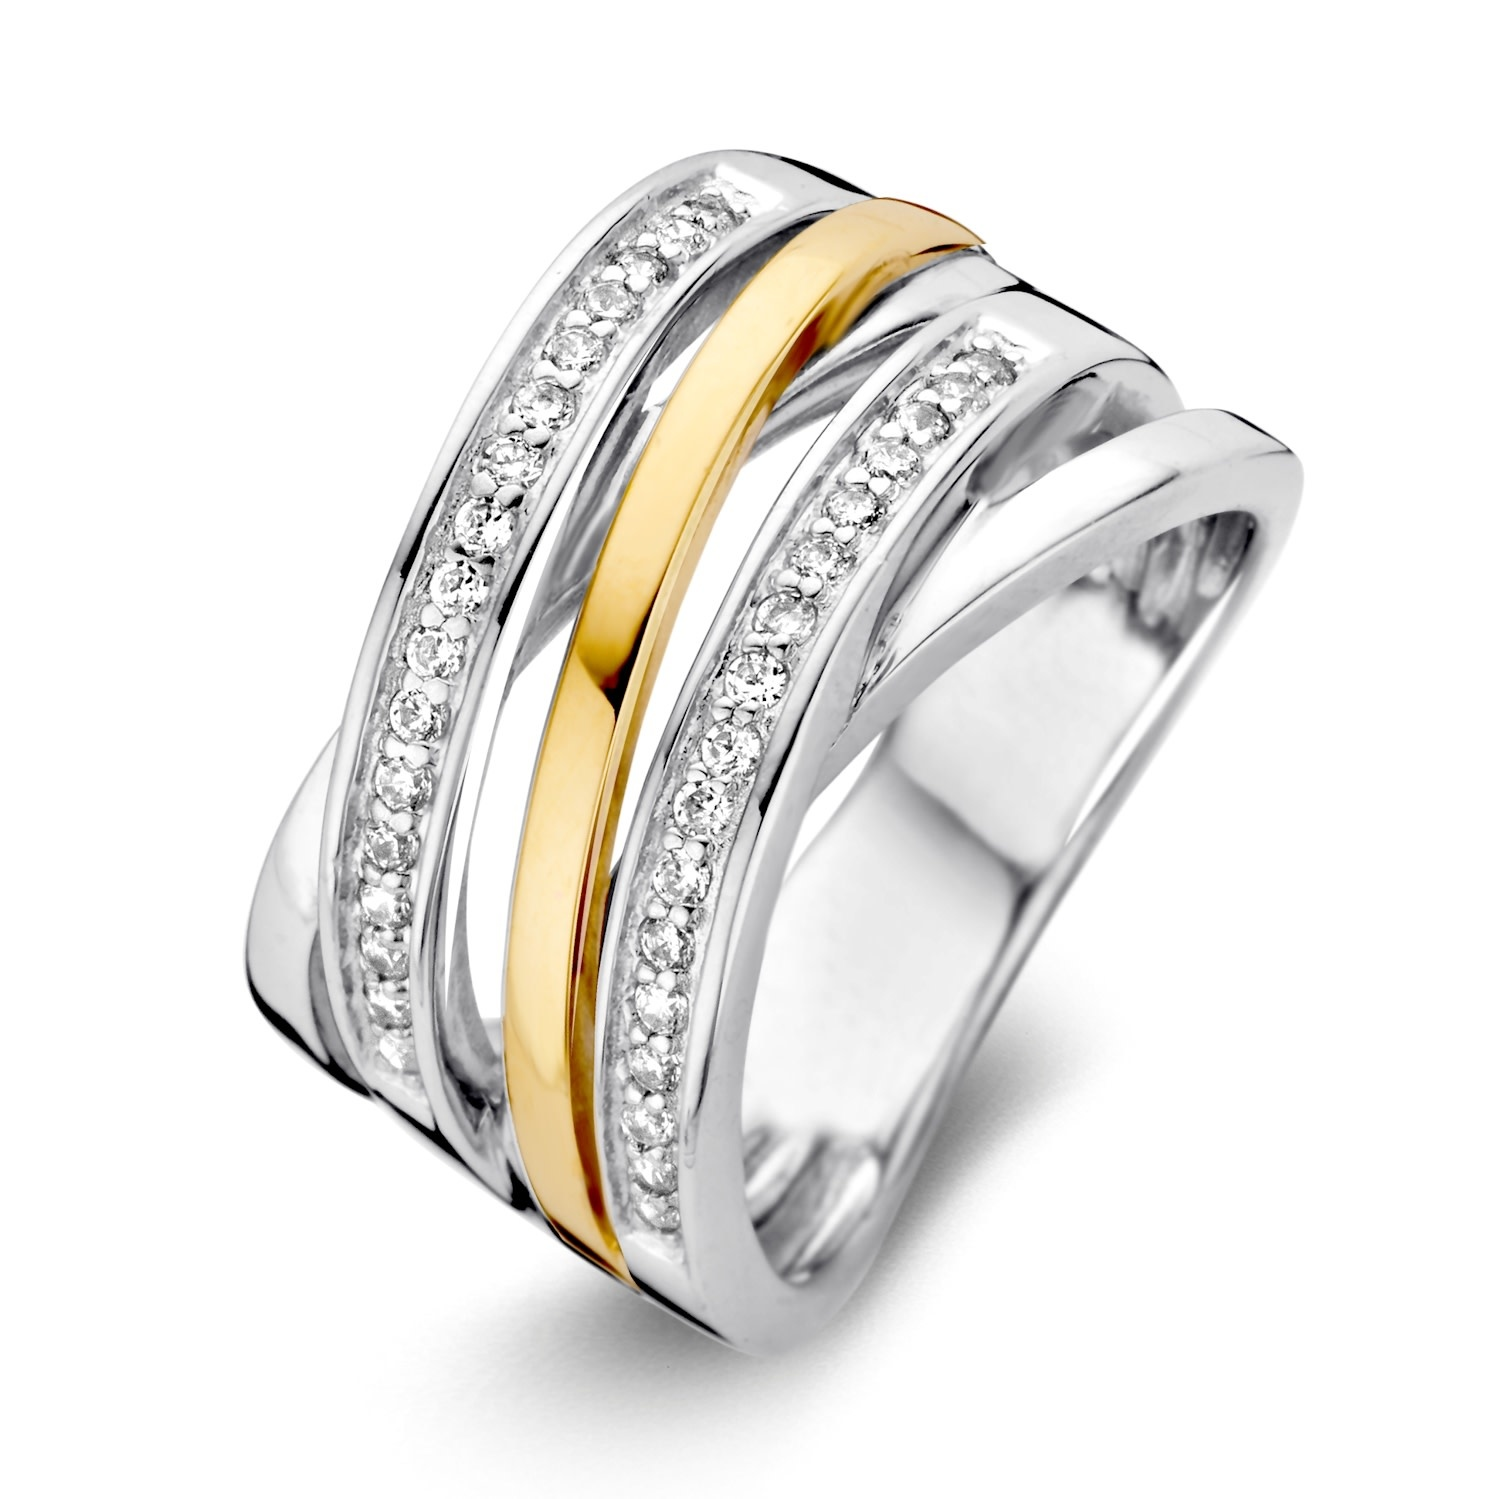 Ring Silver / Gold zirconia RF625214-1